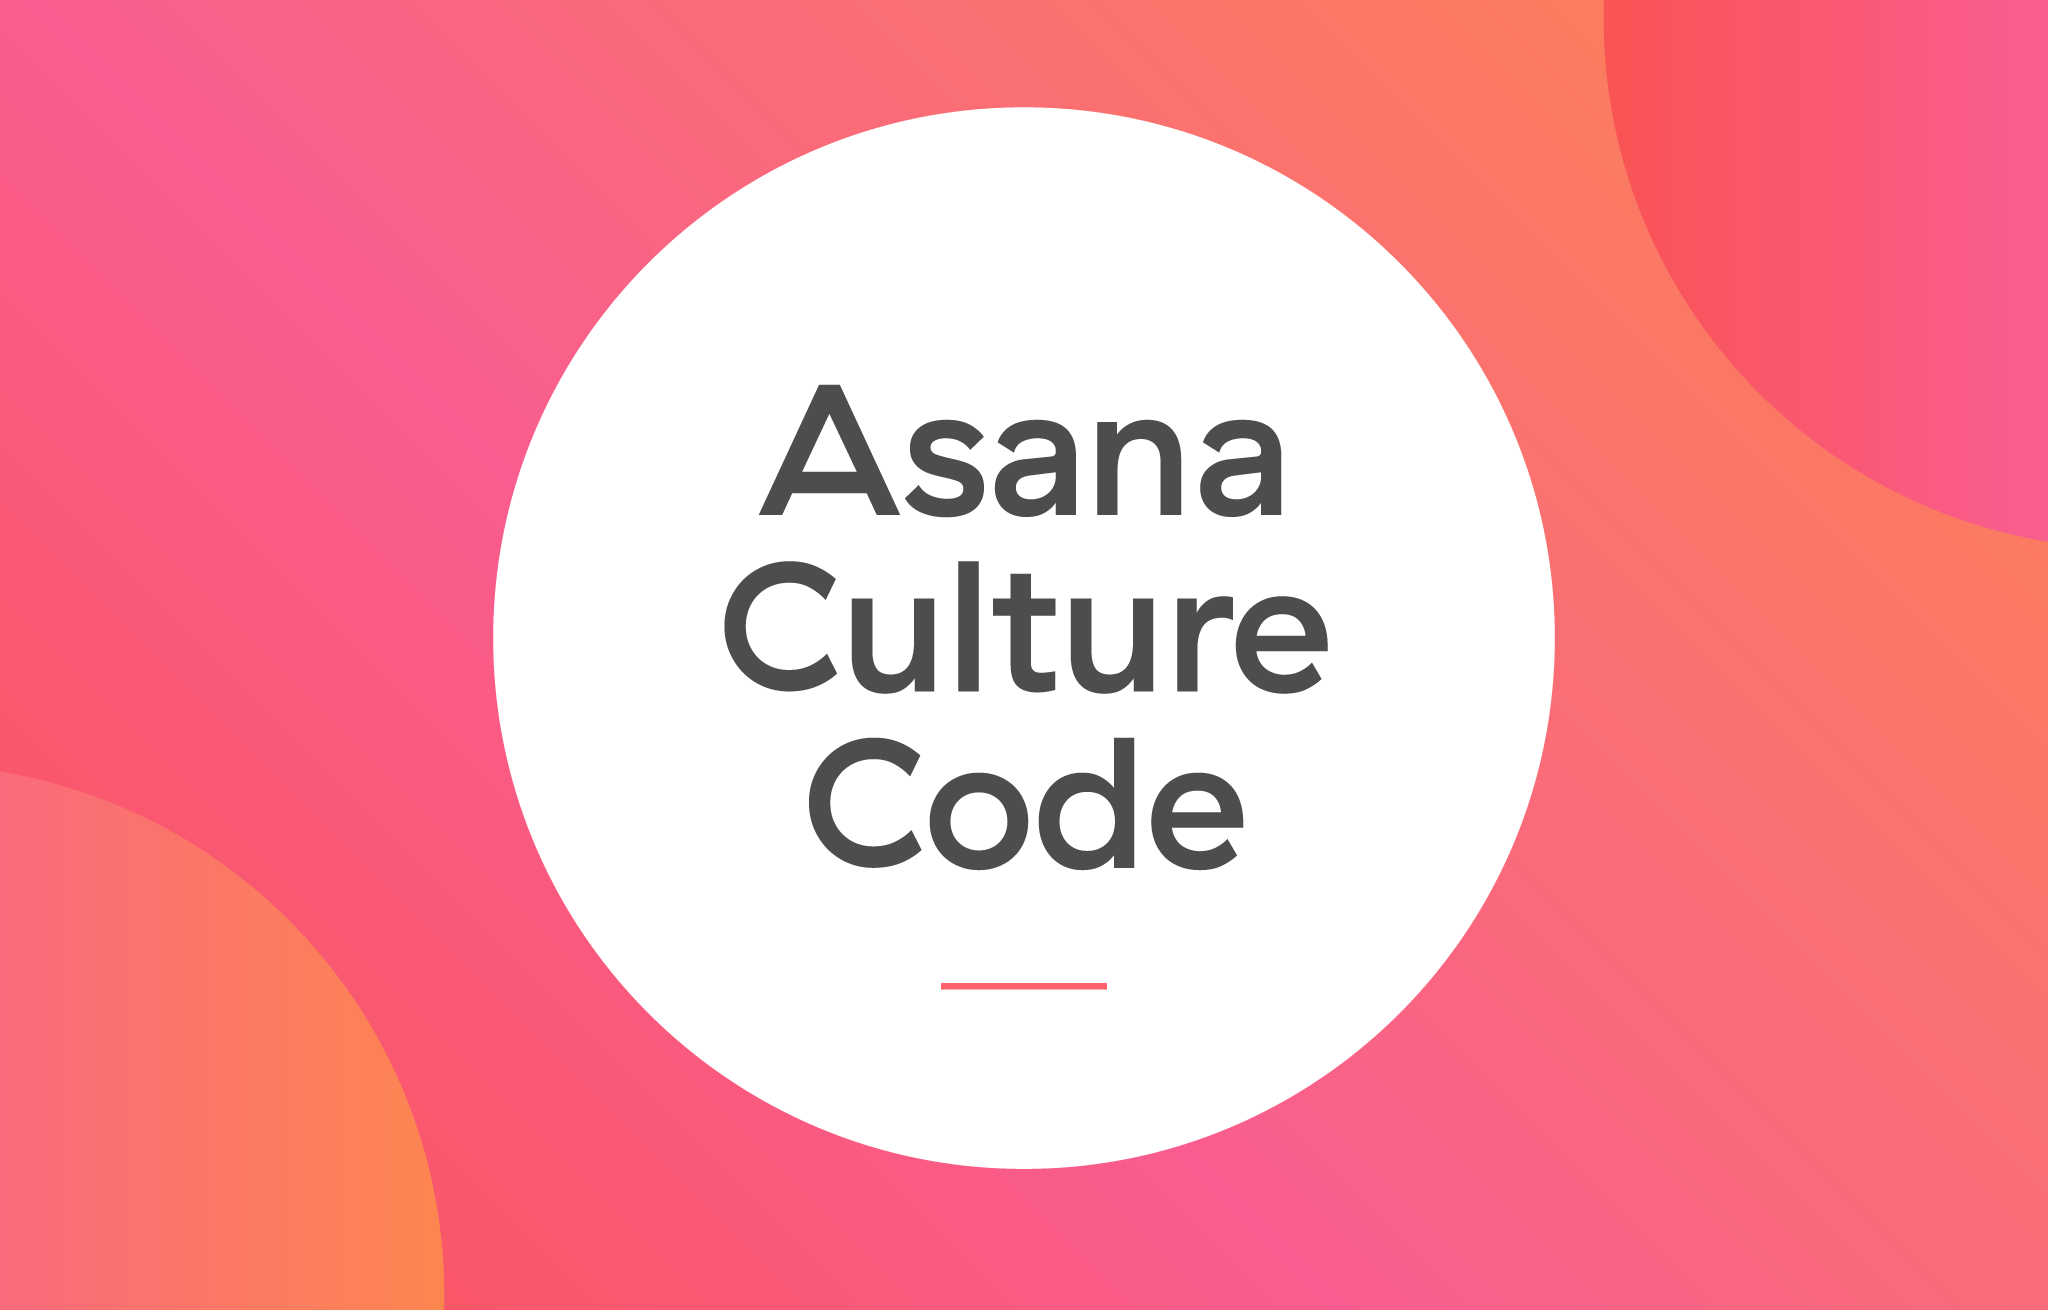 Learn more about the Asana culture code